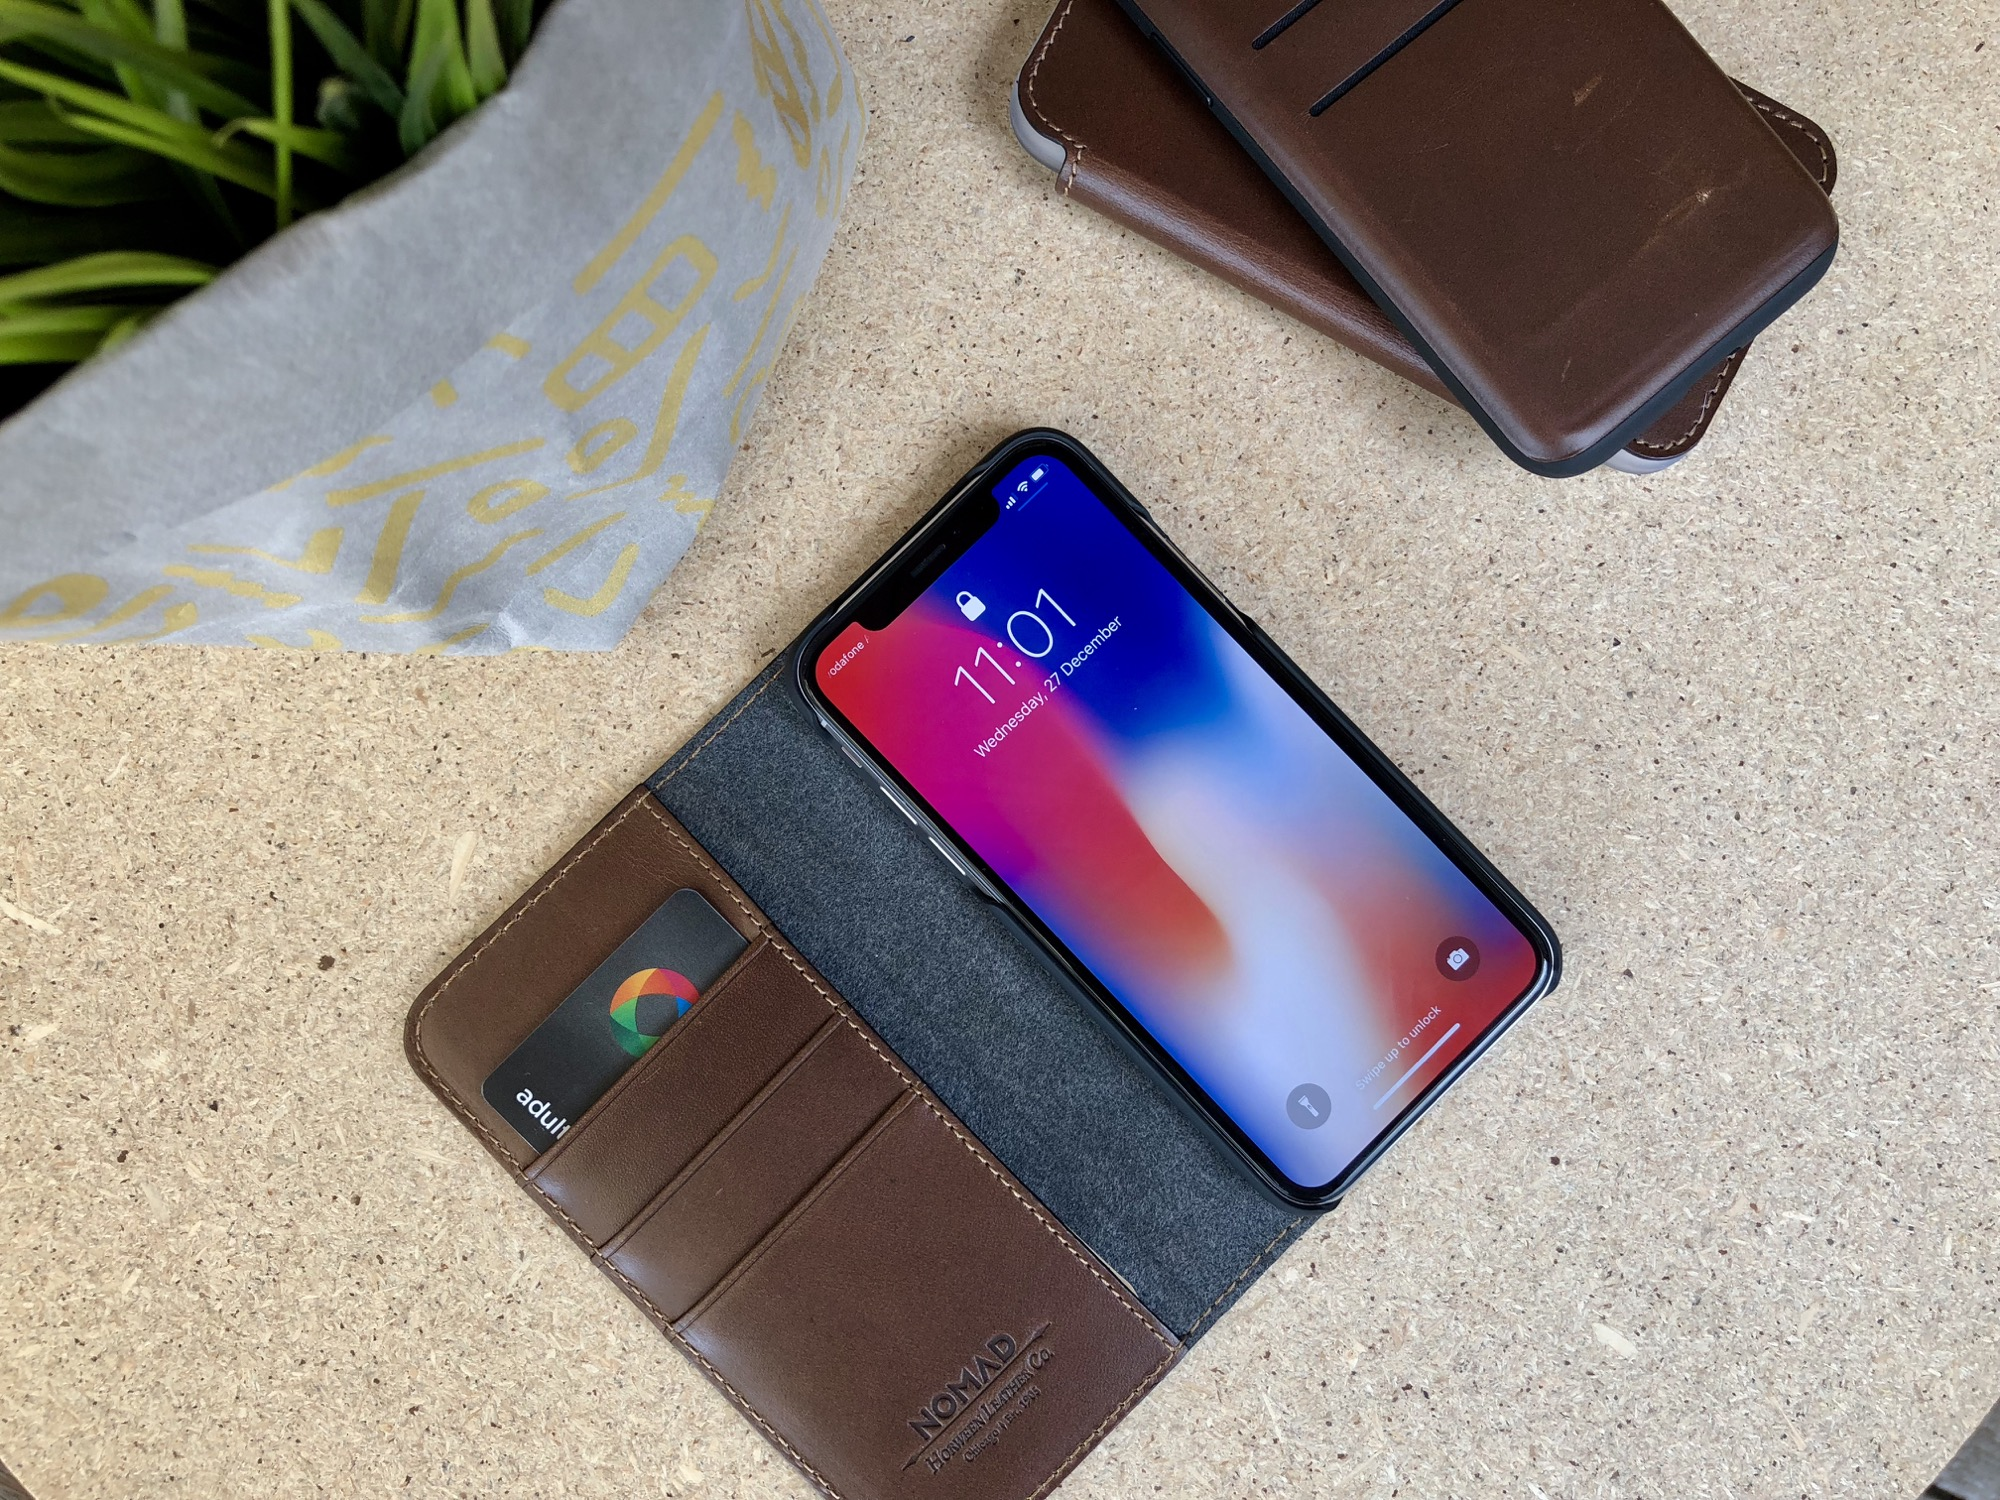 low priced 6bb24 af030 Hands-on With Nomad iPhone X Leather Cases - Mac Prices Australia